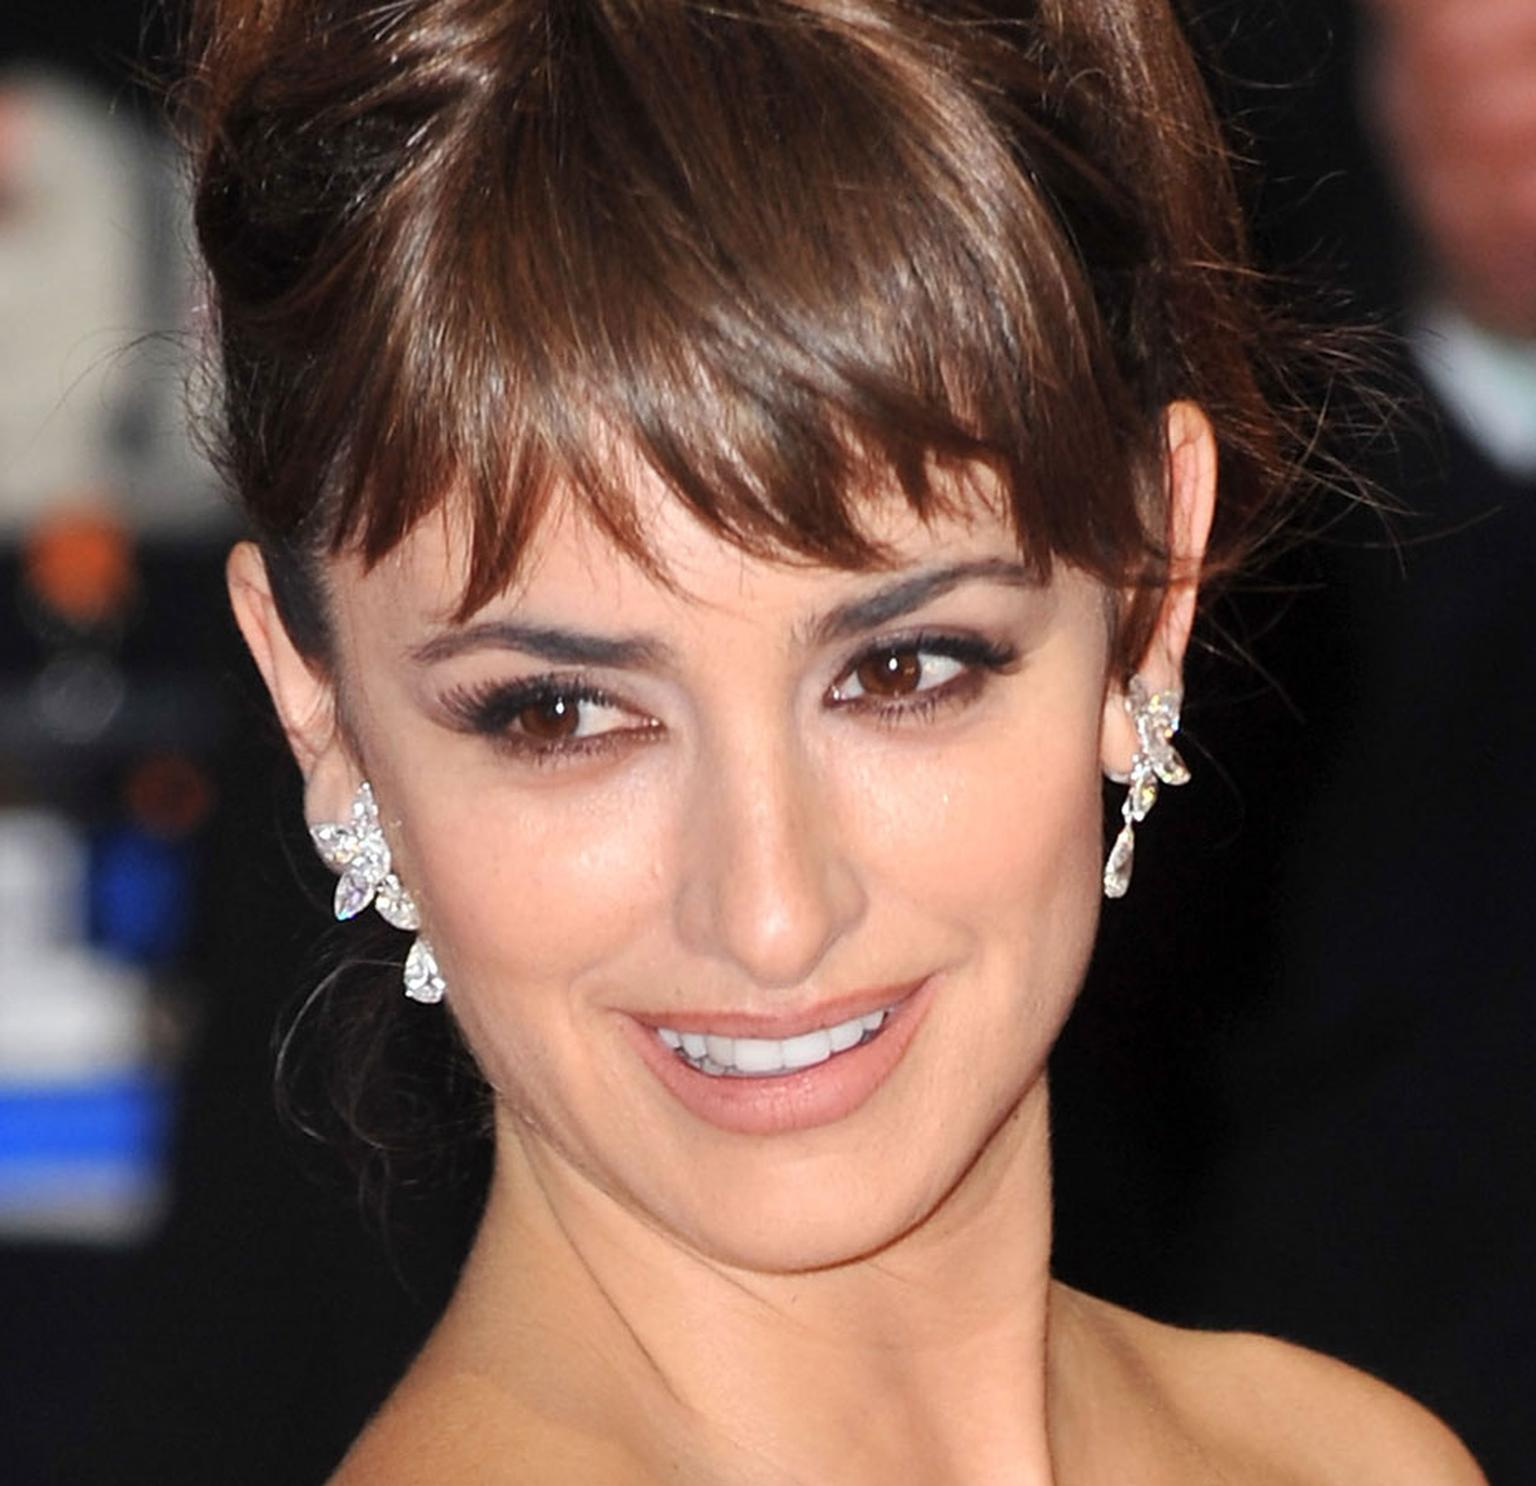 Penelope-Cruz-wearing-Chopard-at-the-Baftas-in-London-MAIN-PIC